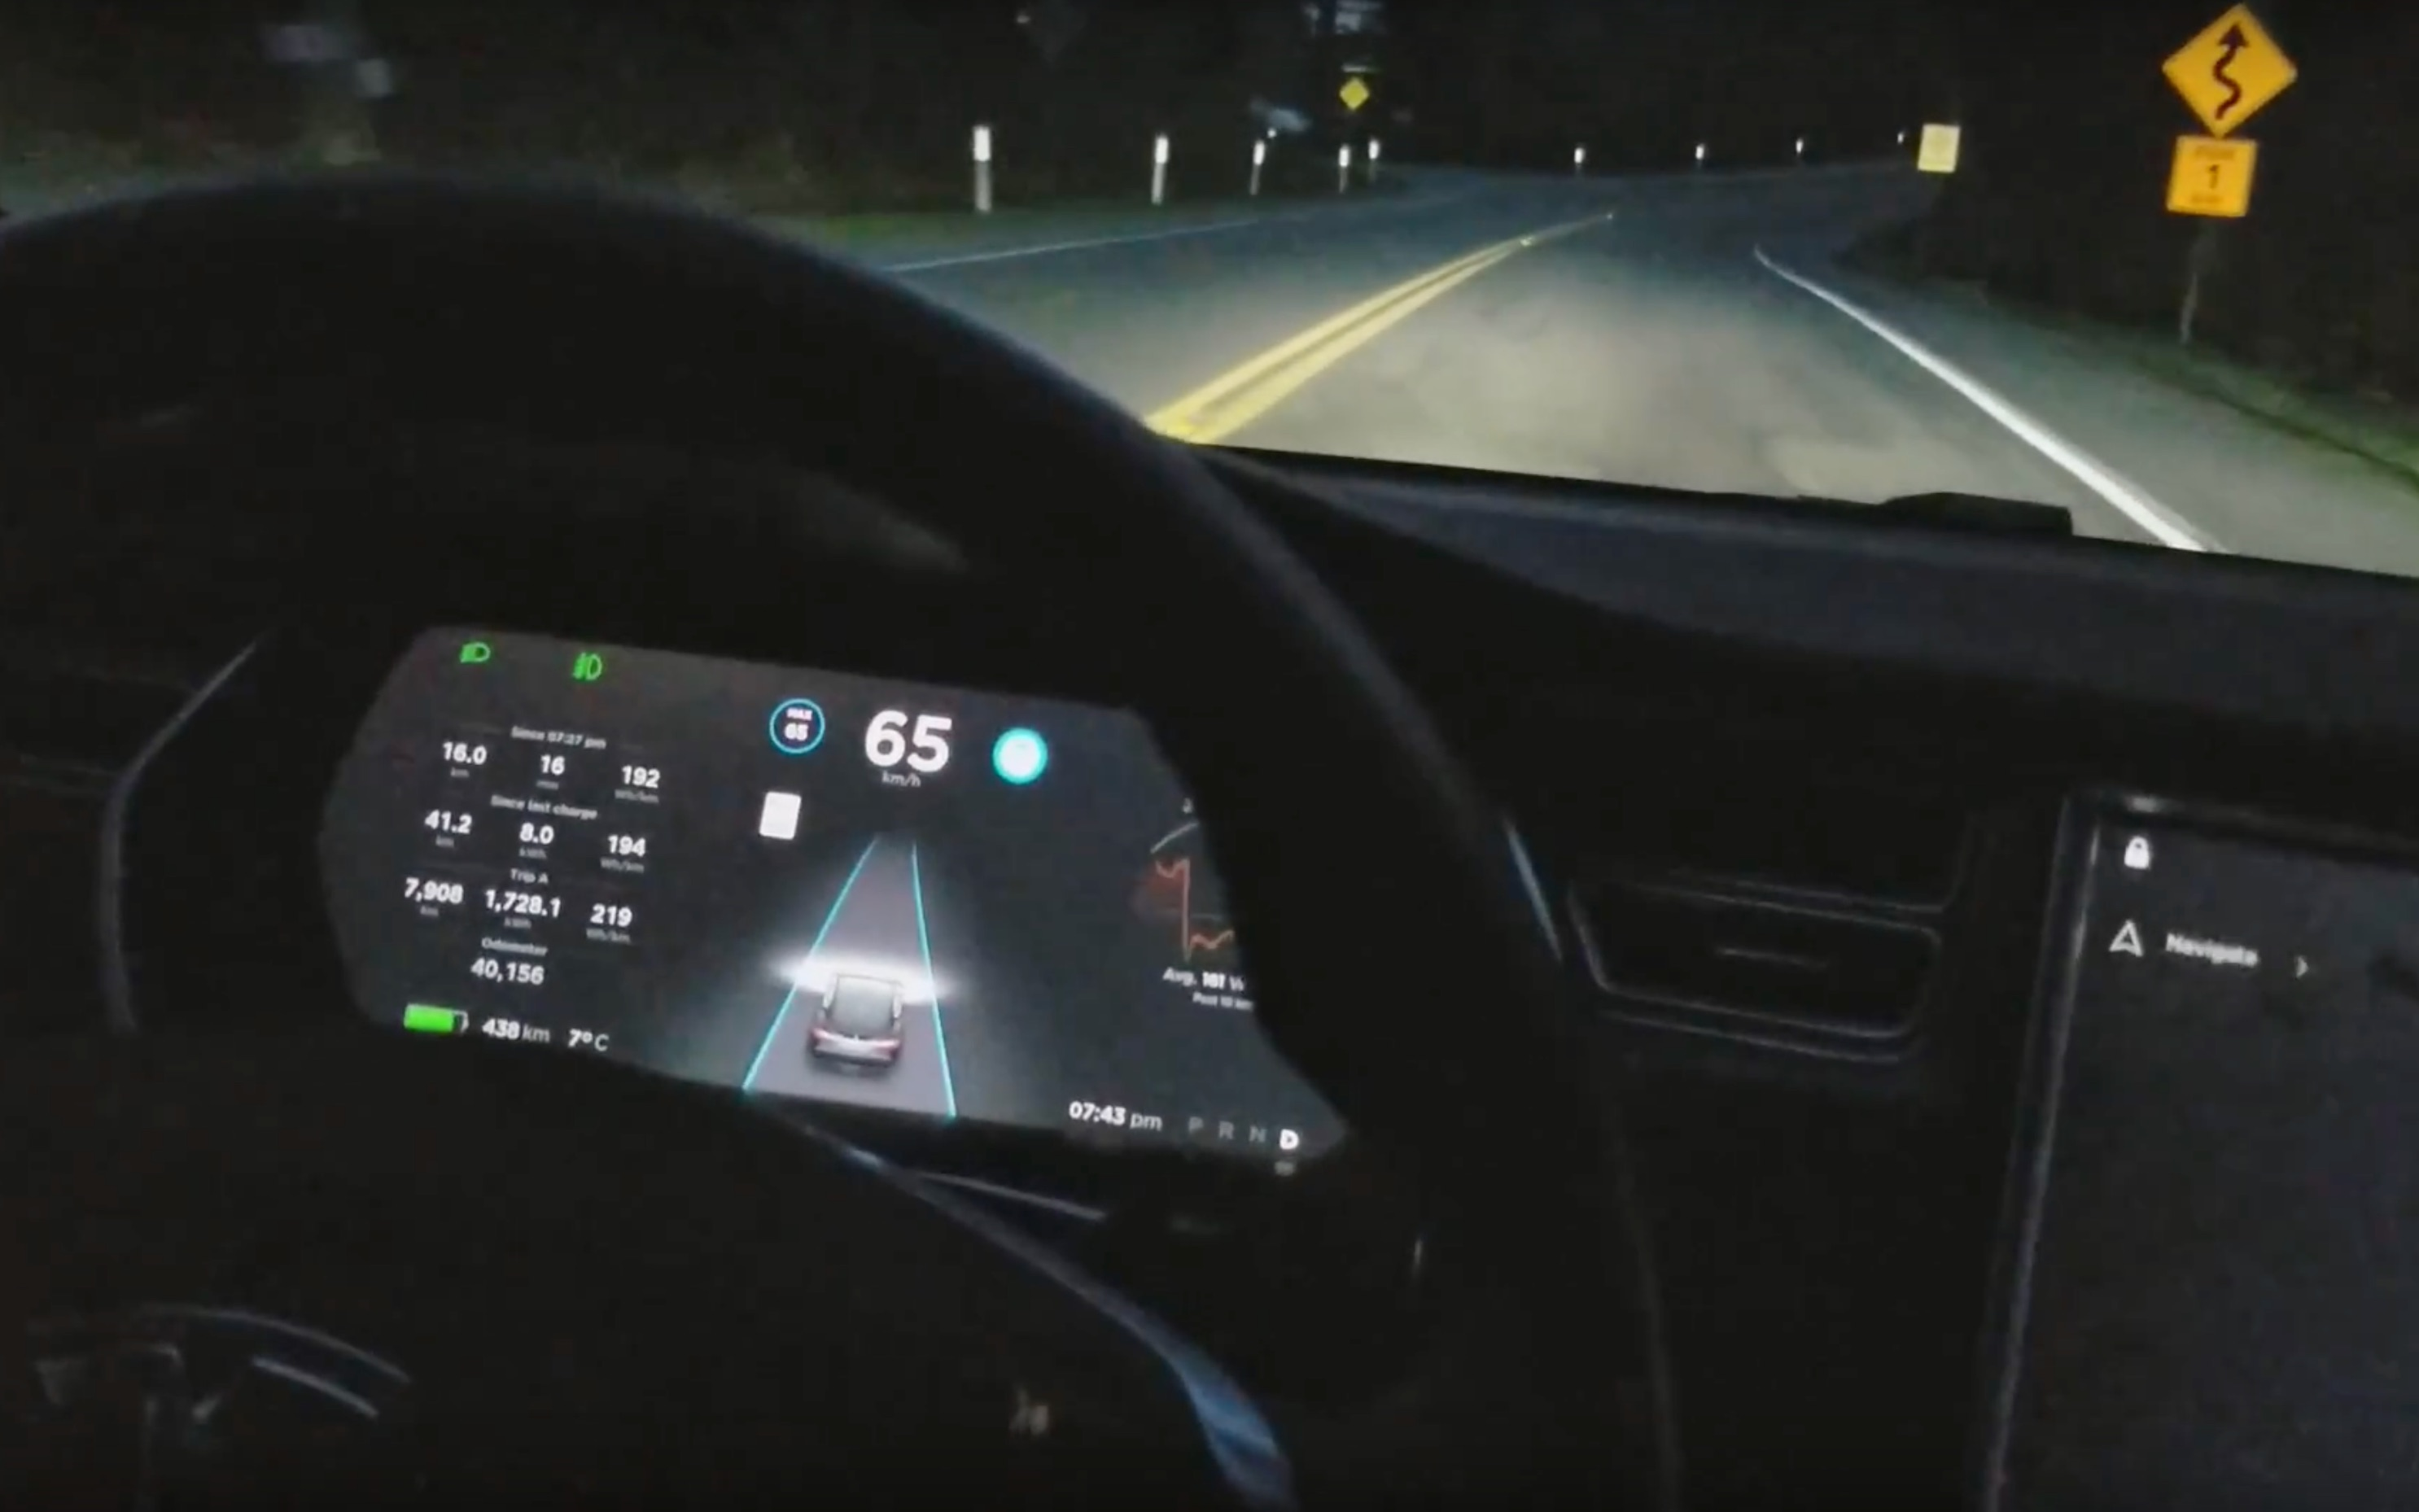 Tesla's latest Autopilot rewrite is getting rave reviews